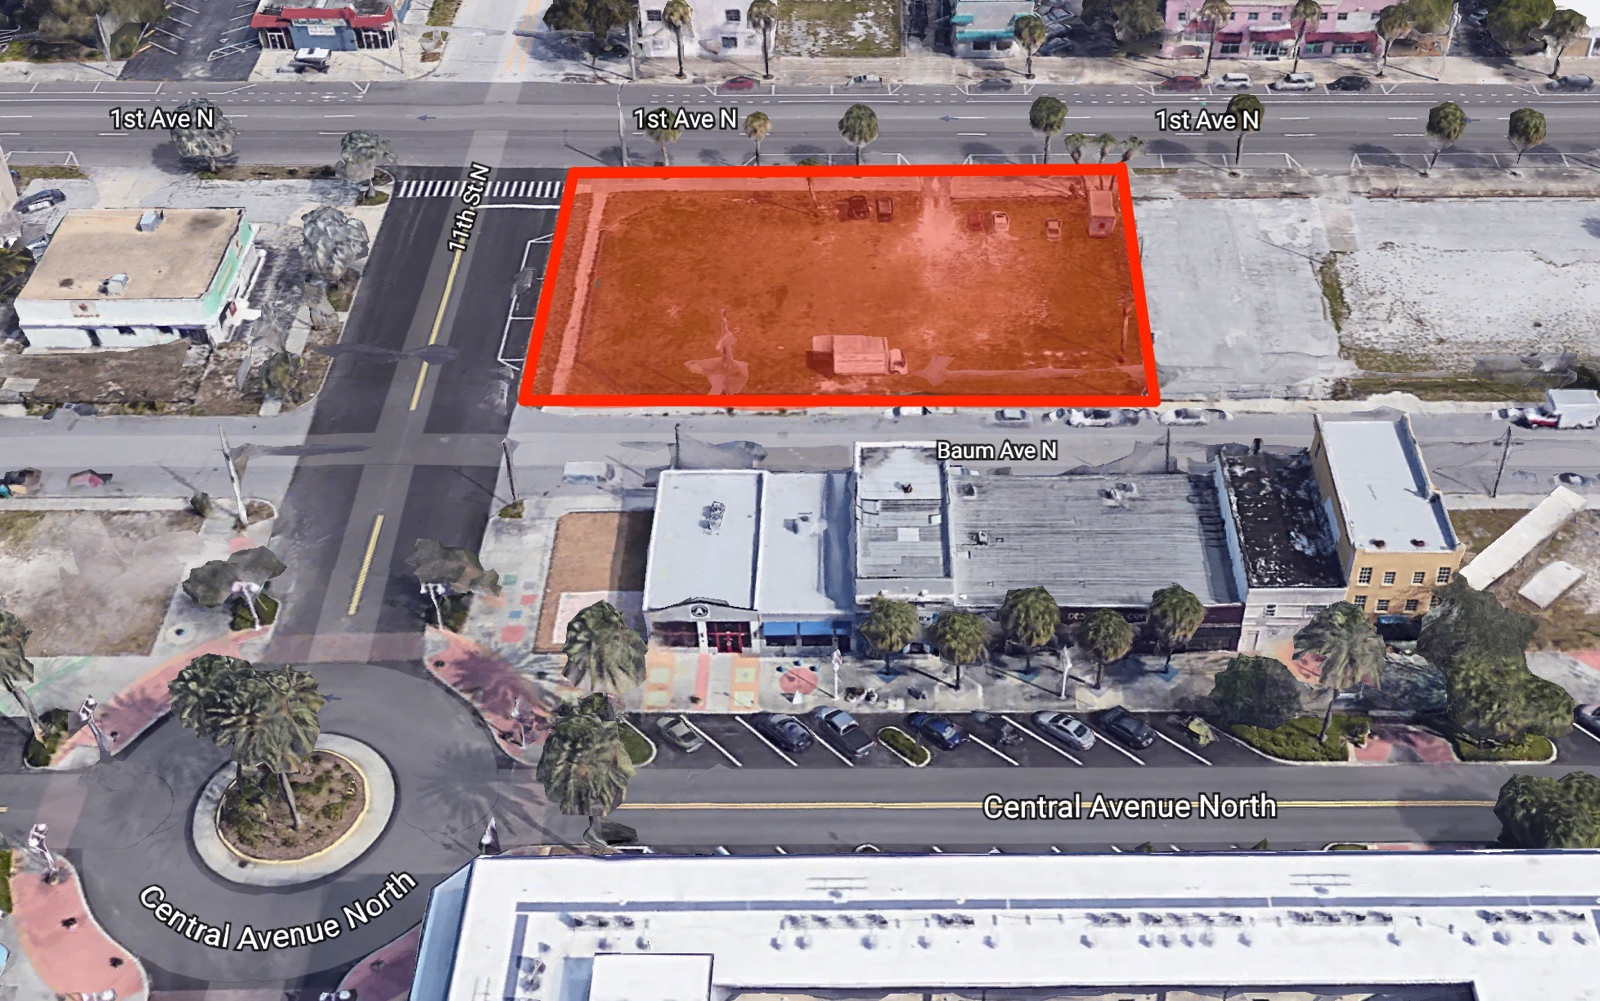 a boutique hotel is planned for the corner of 11th street and Baum ave North in the EDGE District of Downtown St Petersburg, FL